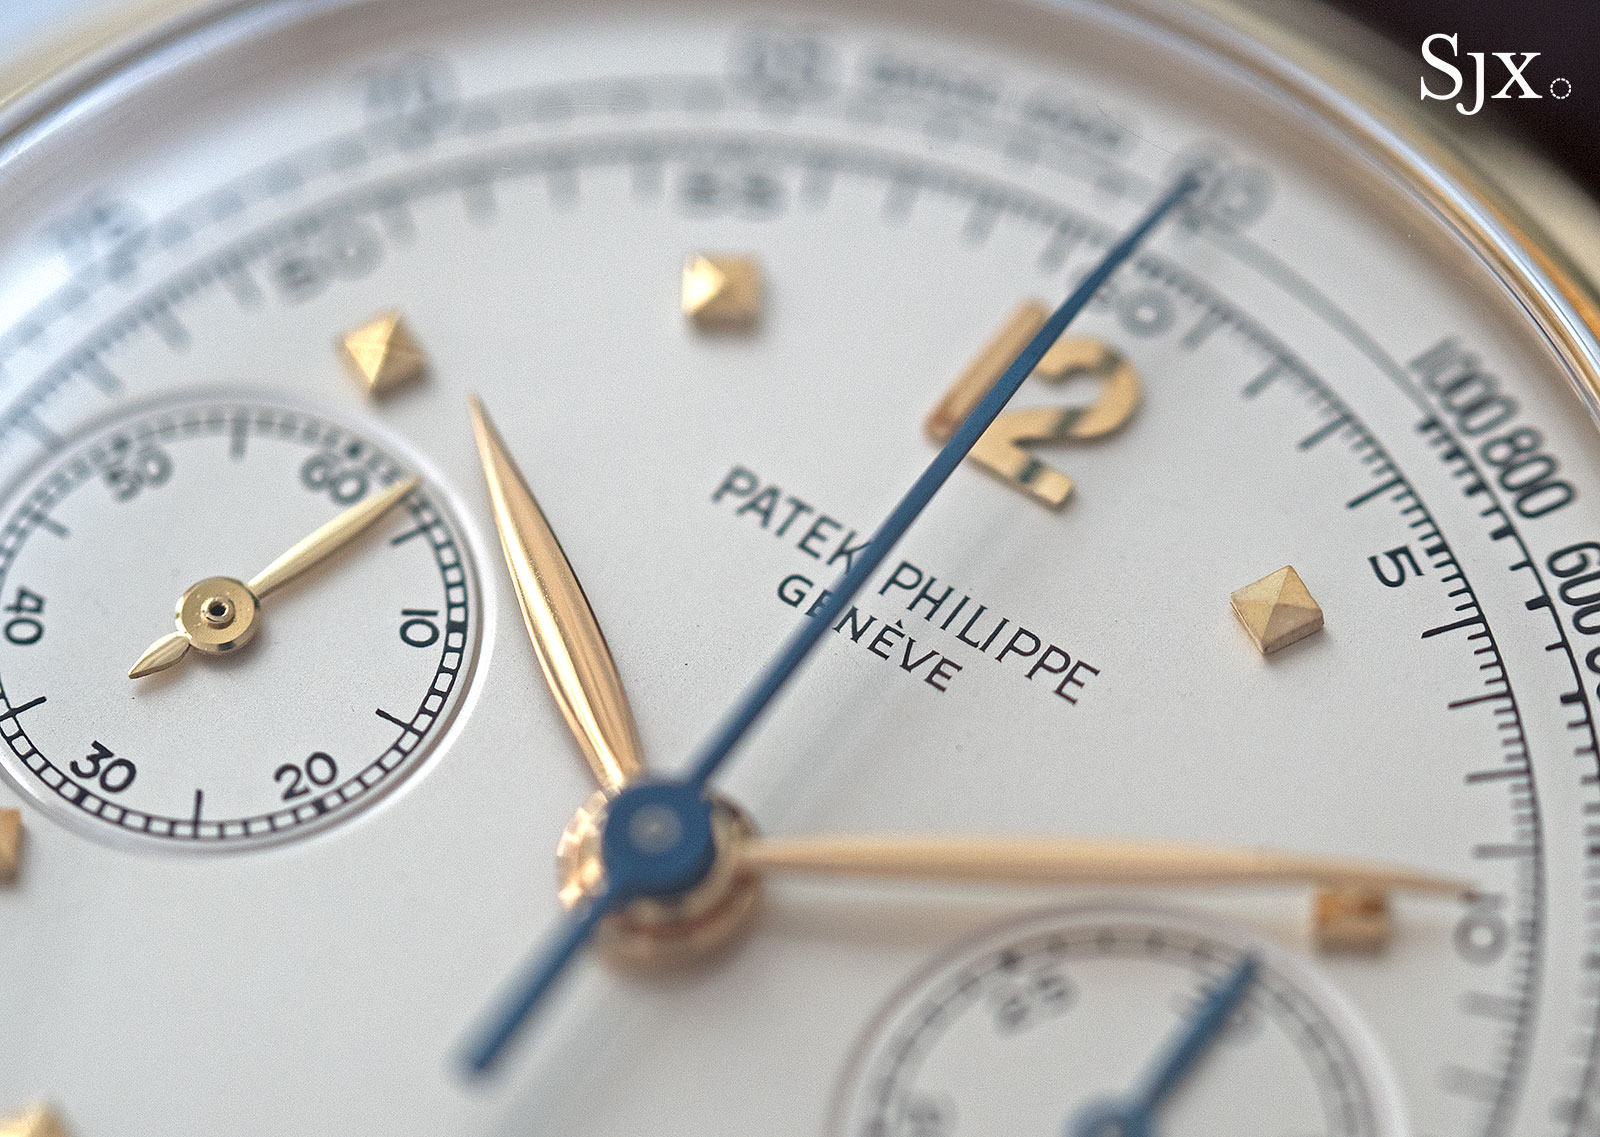 Patek Philippe 1579 yellow gold 4